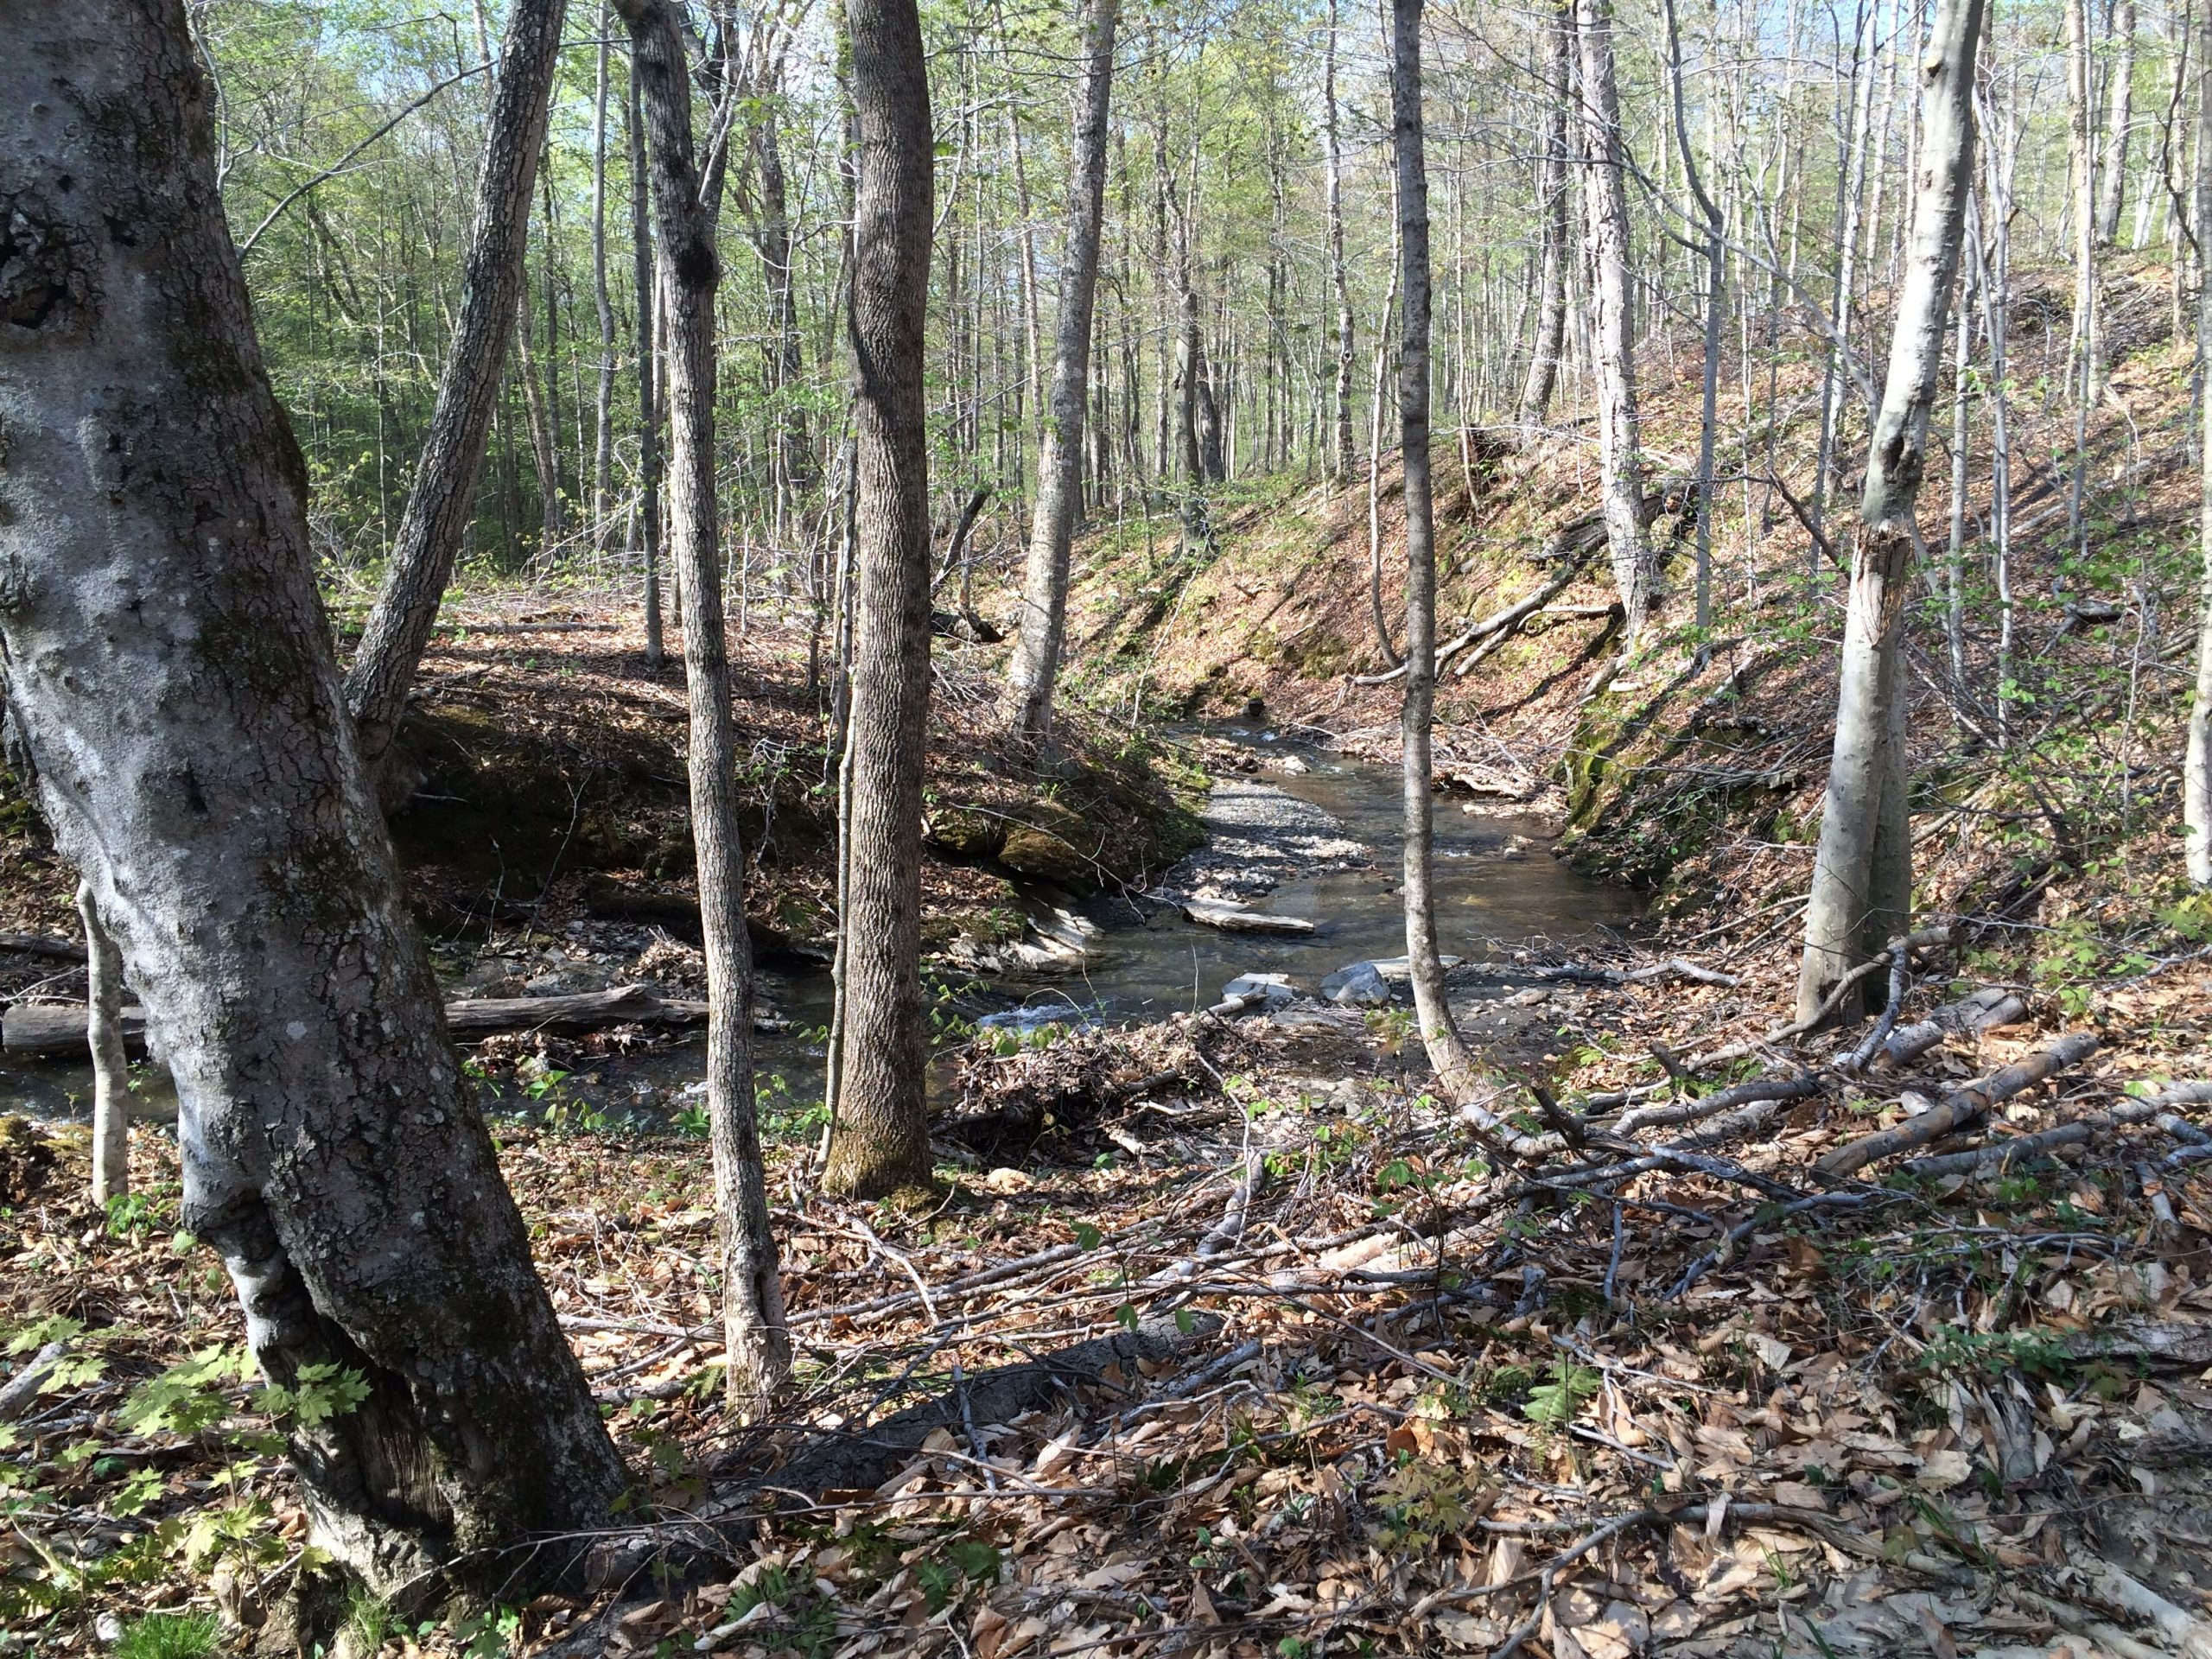 The forrest and the stream